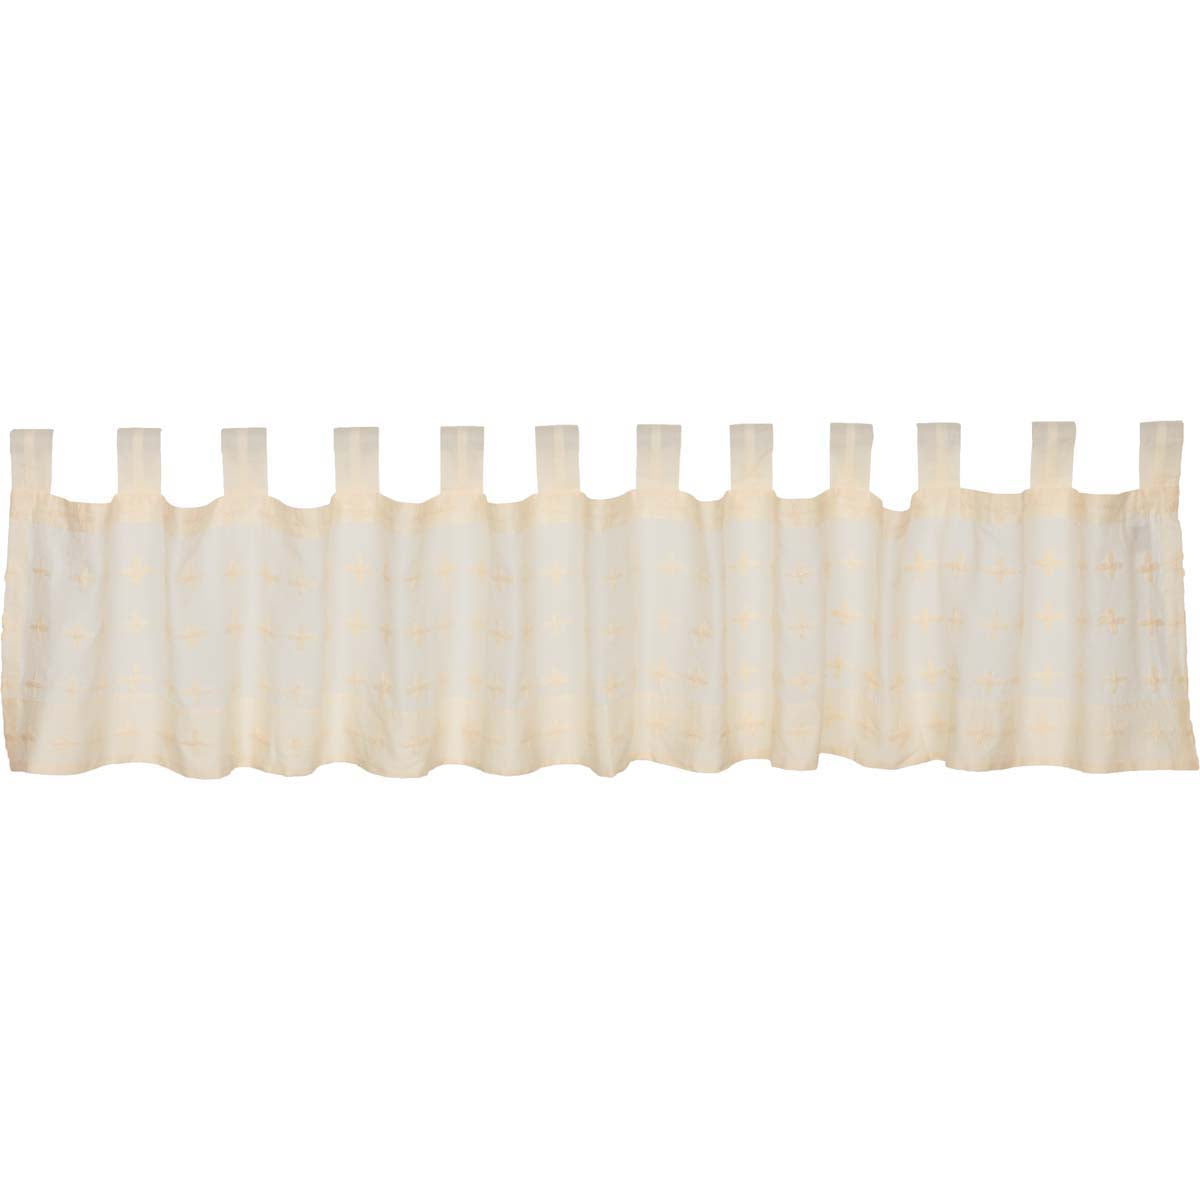 Willow Creme Tab Top Valance 16x90 - Woodrol